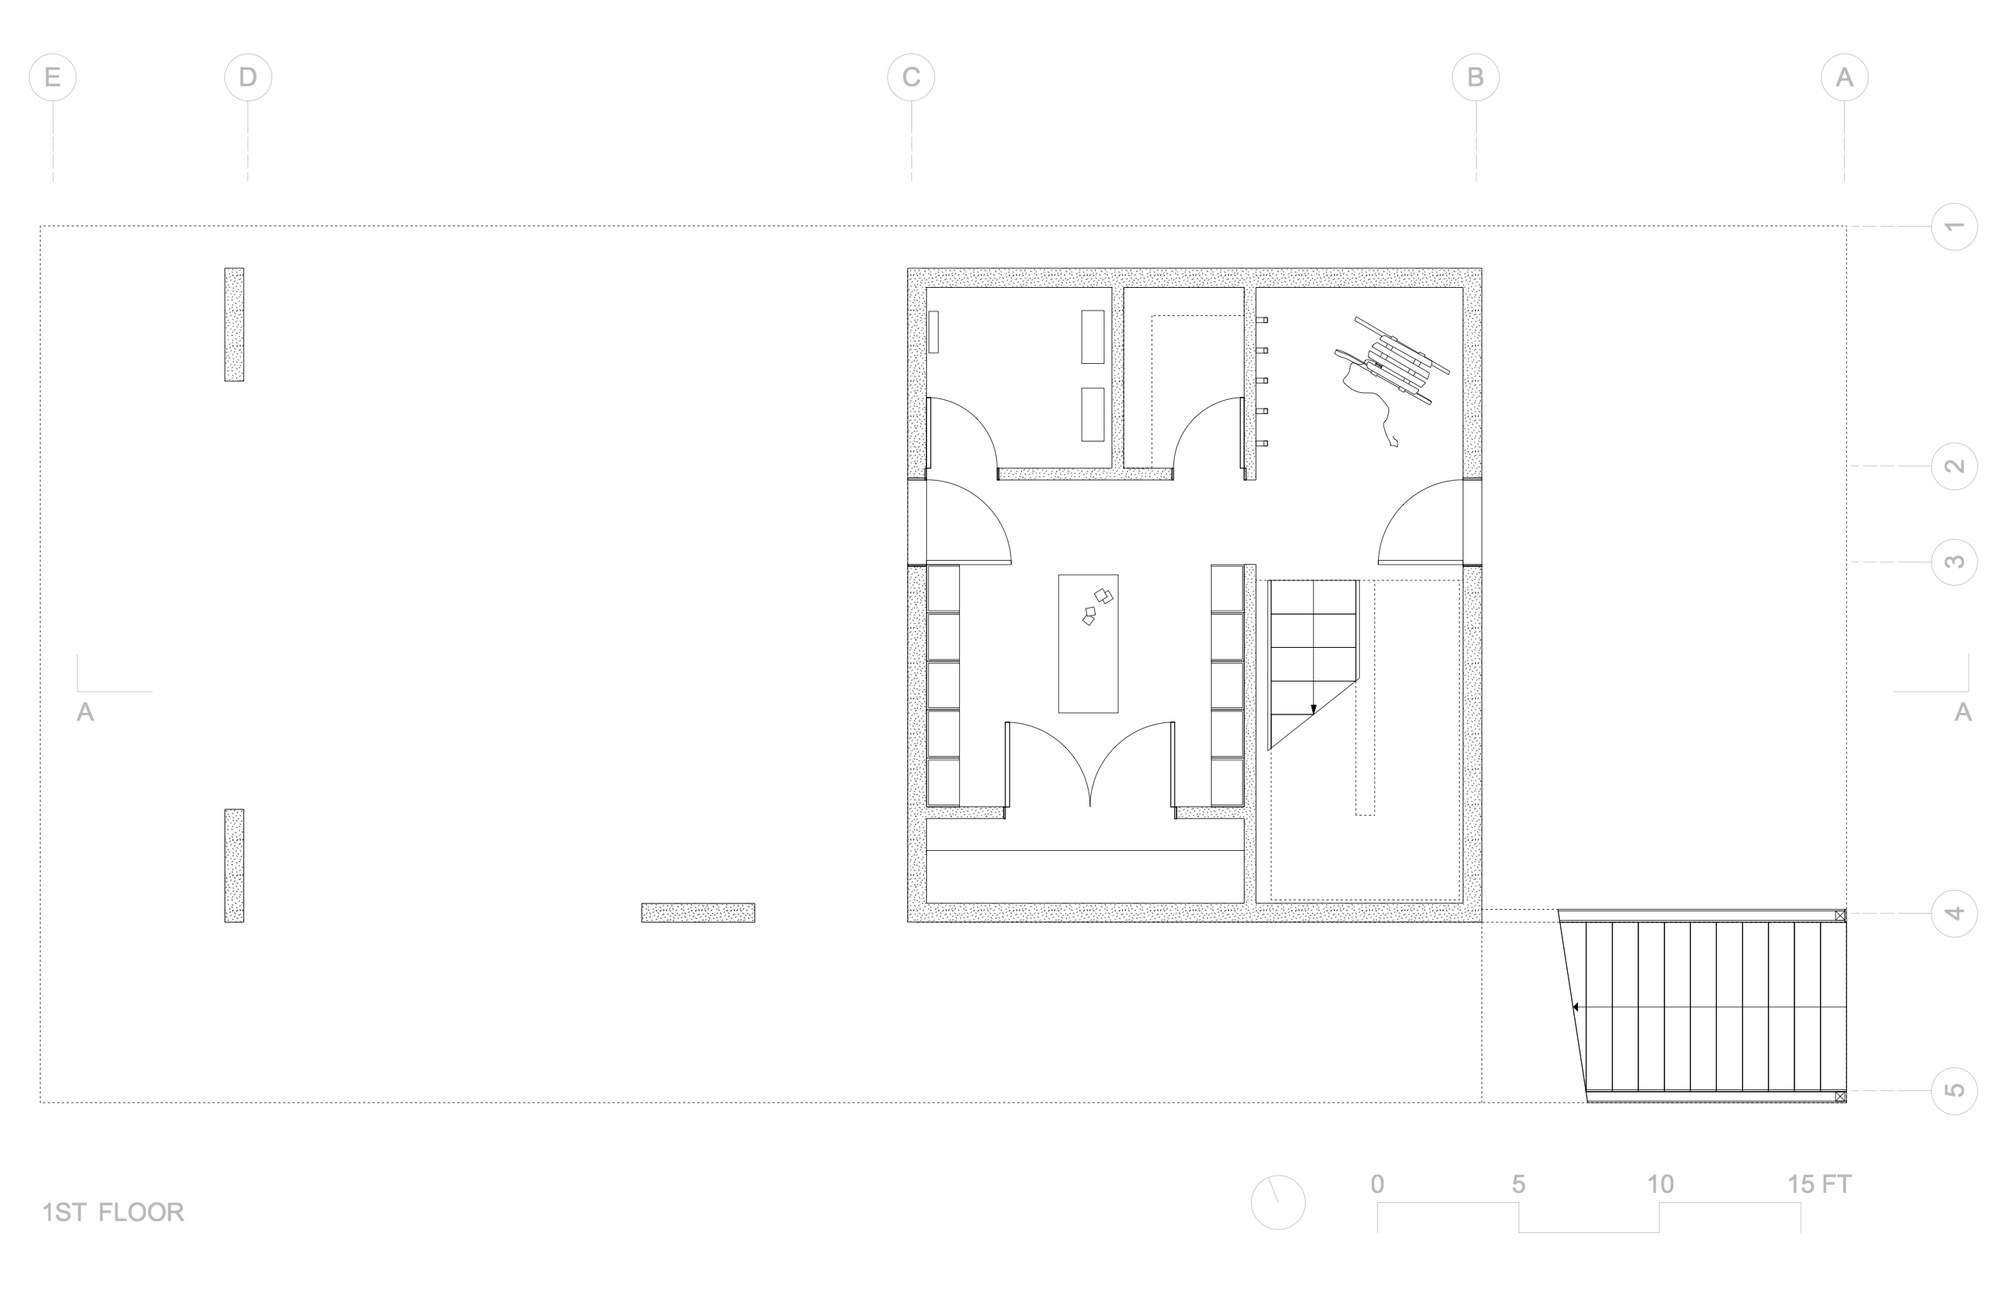 Troll Hus by Mork-Ulnes Architects